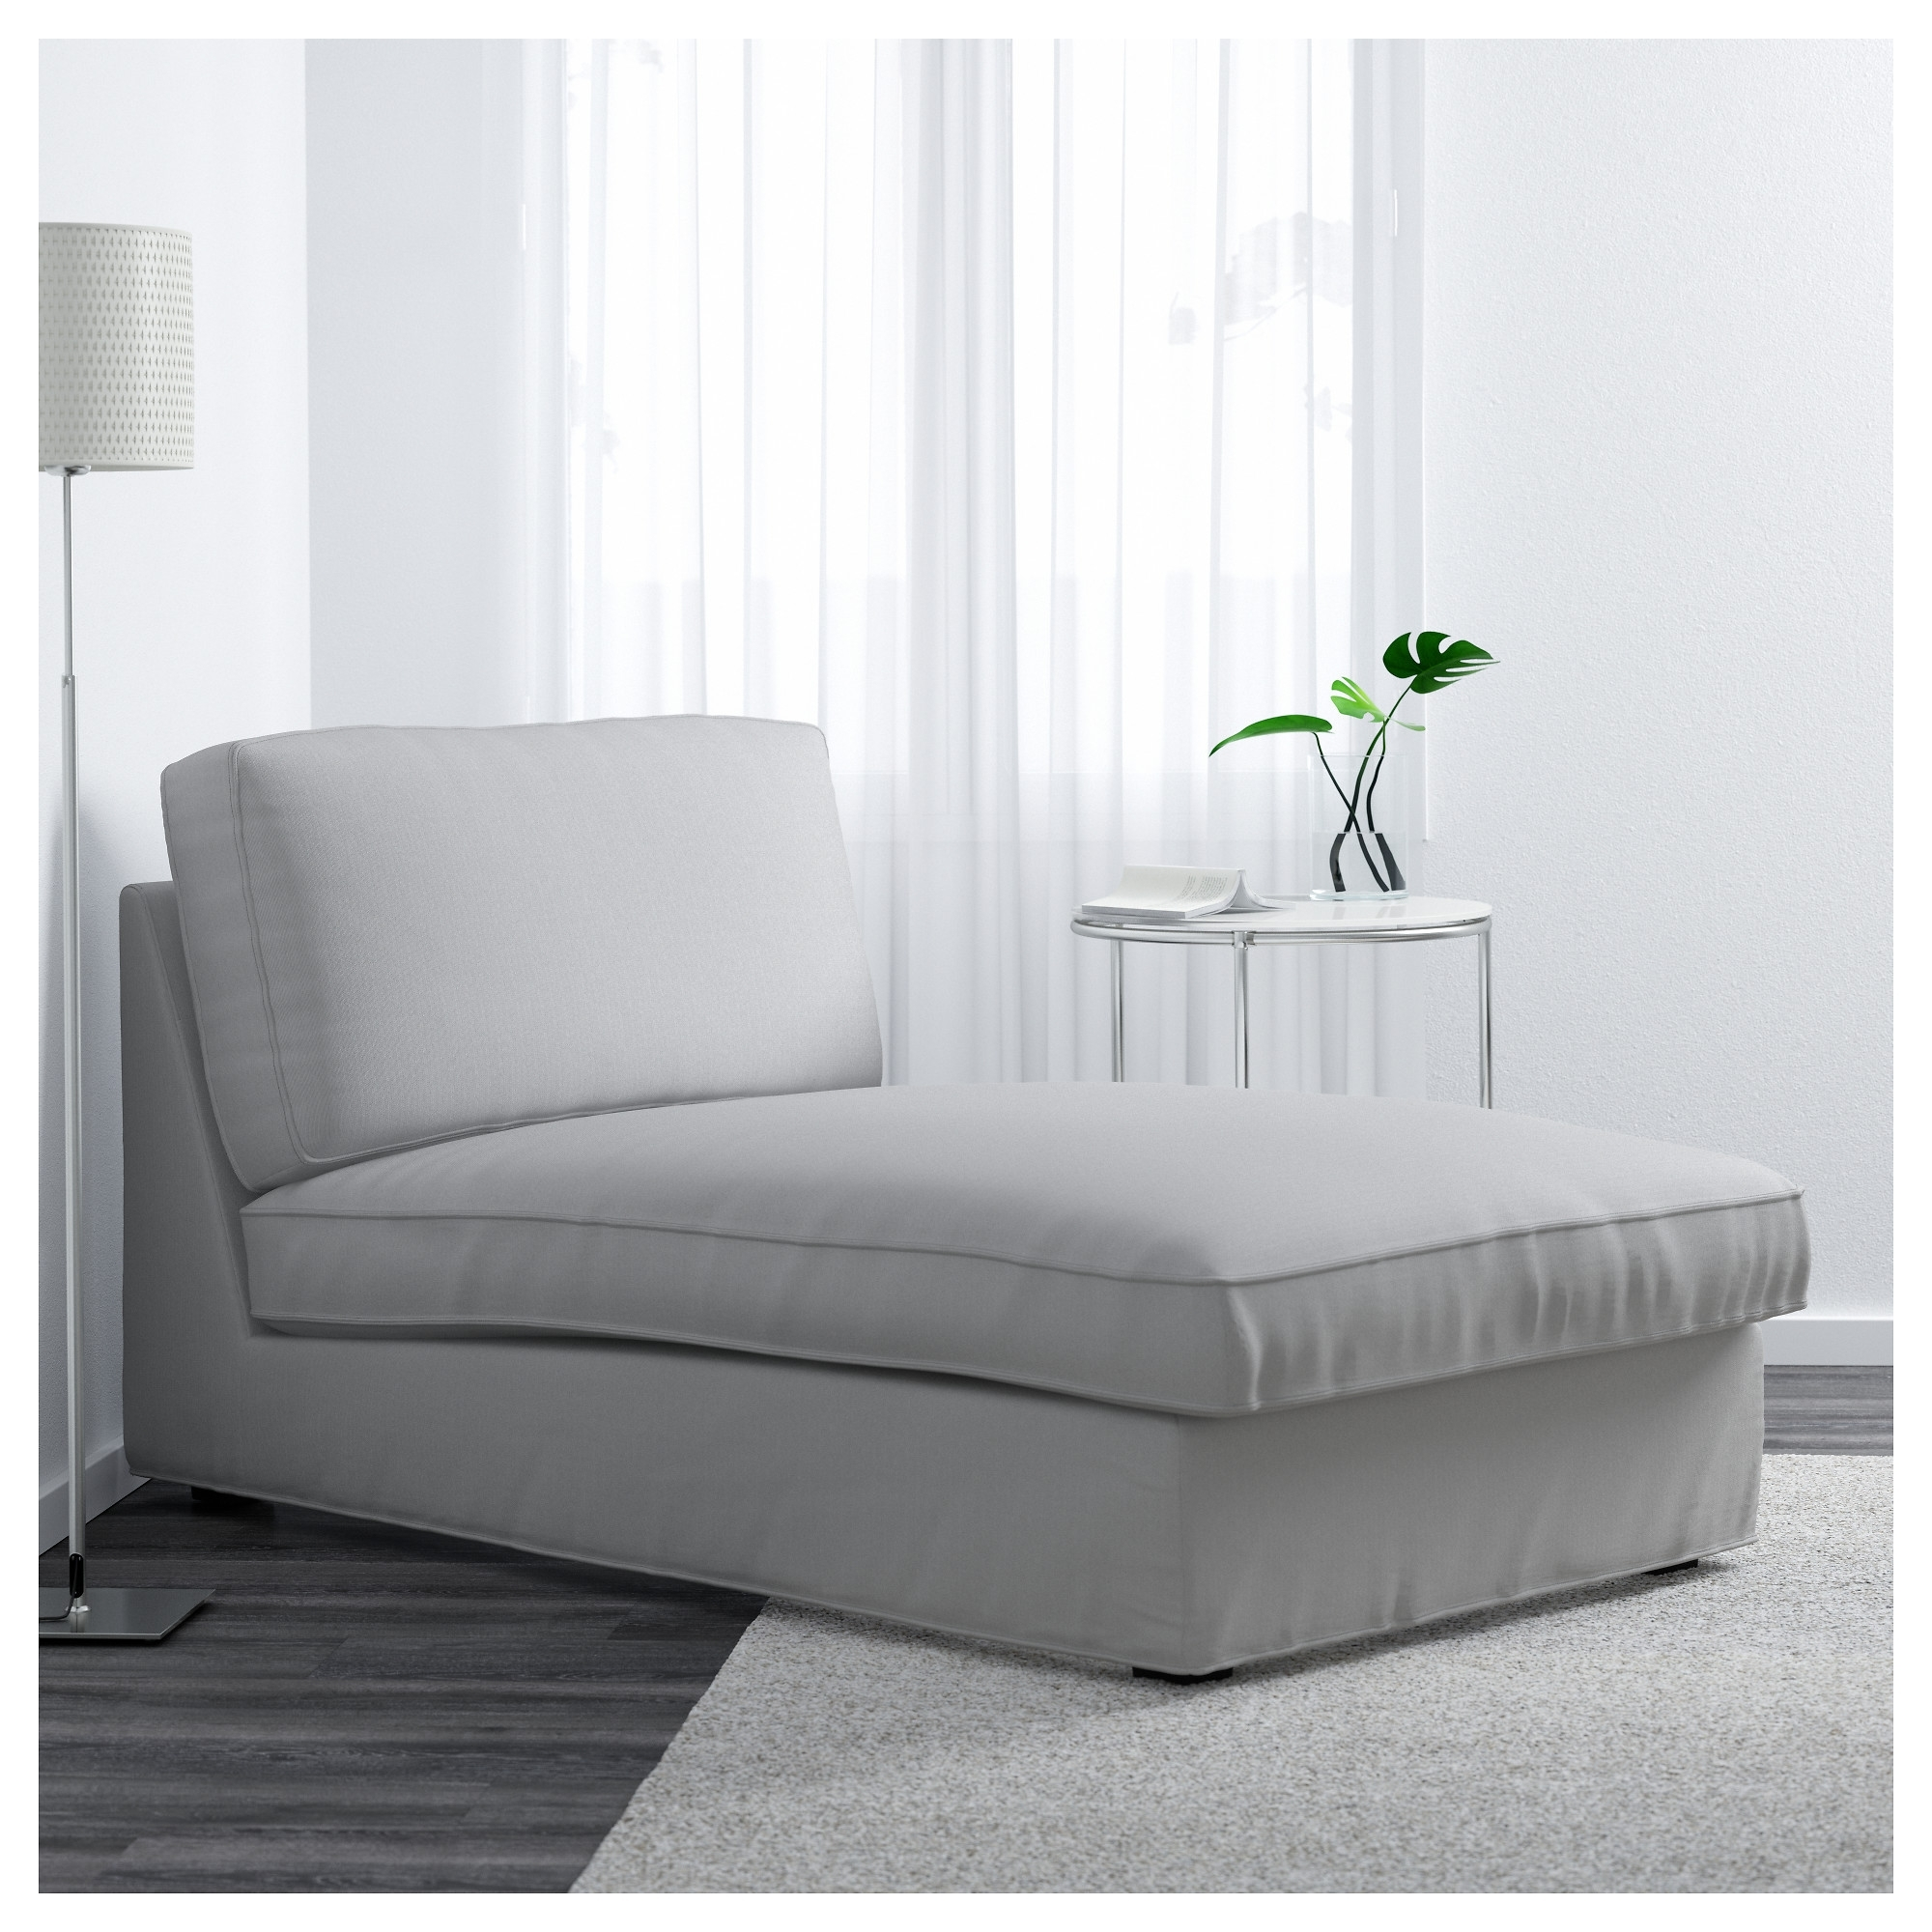 Preferred Kivik Chaise Longue Ramna Light Grey – Ikea With Regard To Ikea Chaise Lounge Chairs (View 3 of 15)